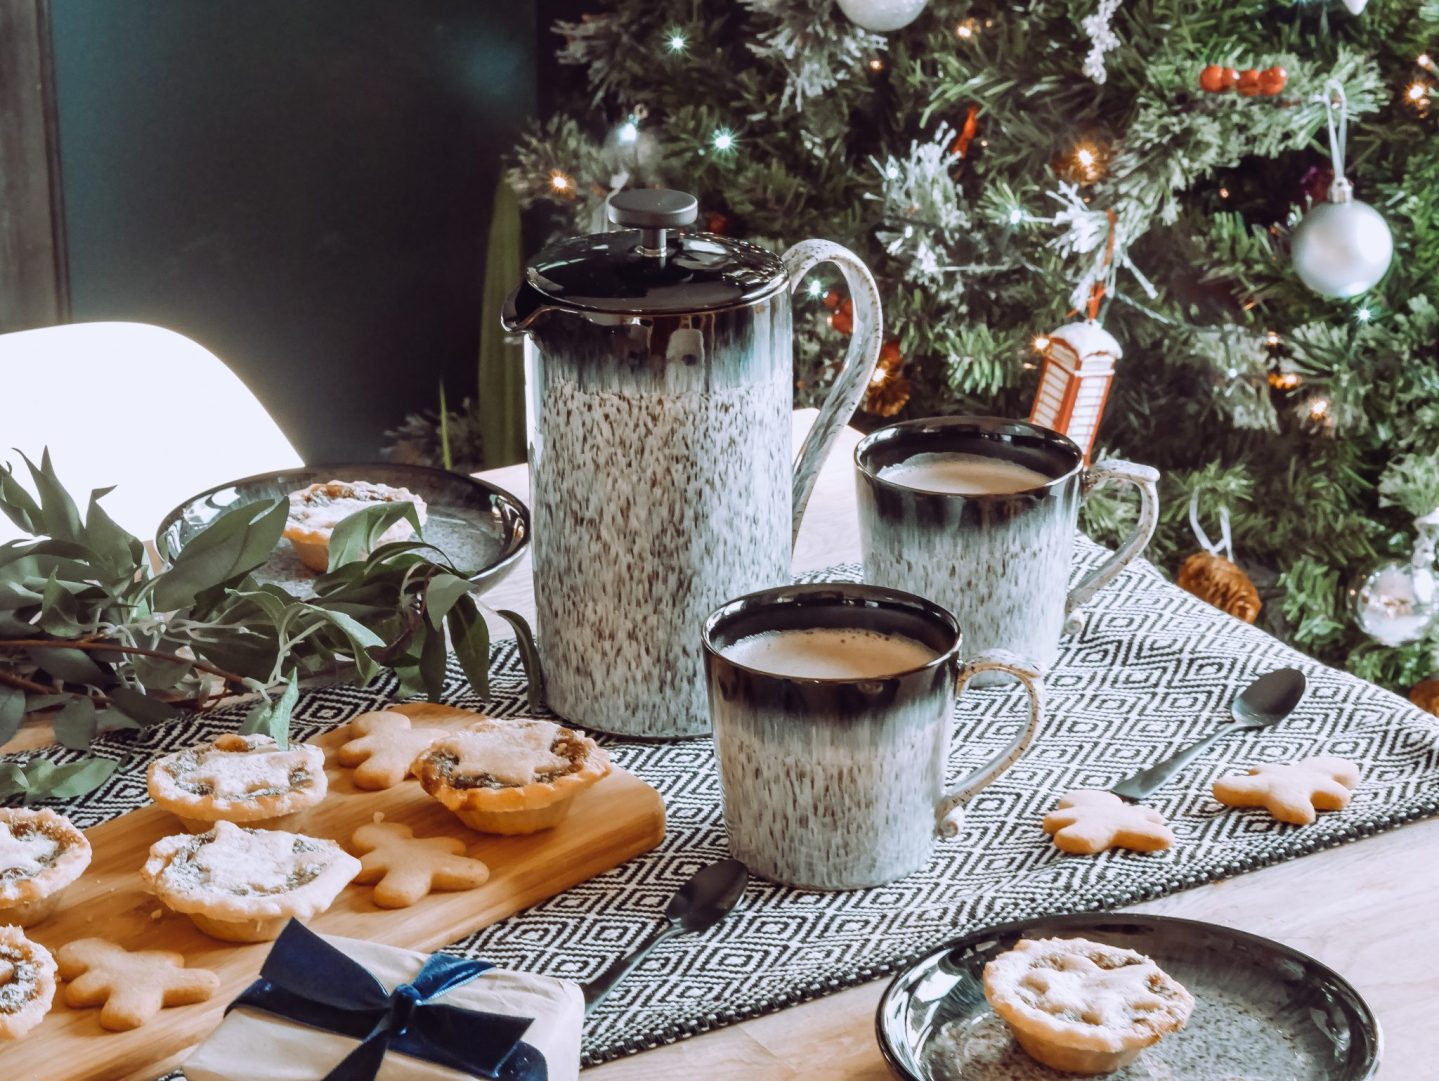 A grey Denby coffee pot and two mugs set out for Christmas with mince pies and a Christmas tree in the background